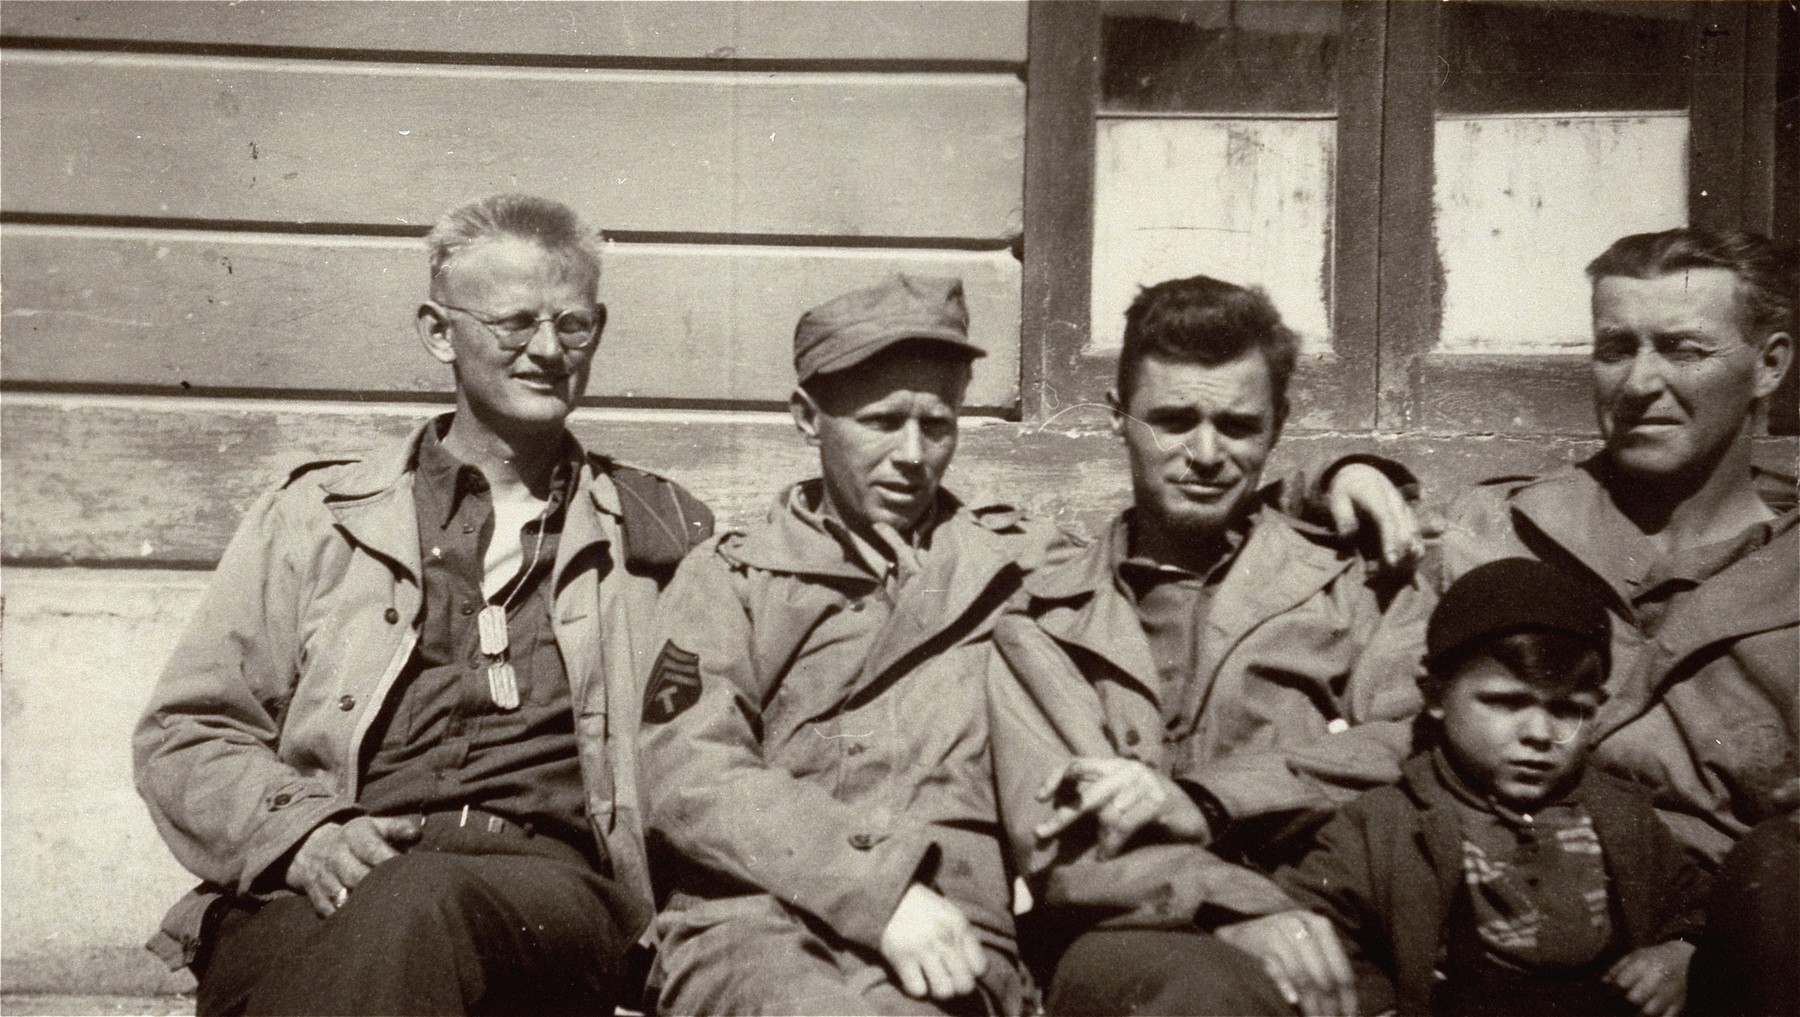 American soldiers in Dachau pose with a young survivor.  On the far right is Elton Cooper, US army.